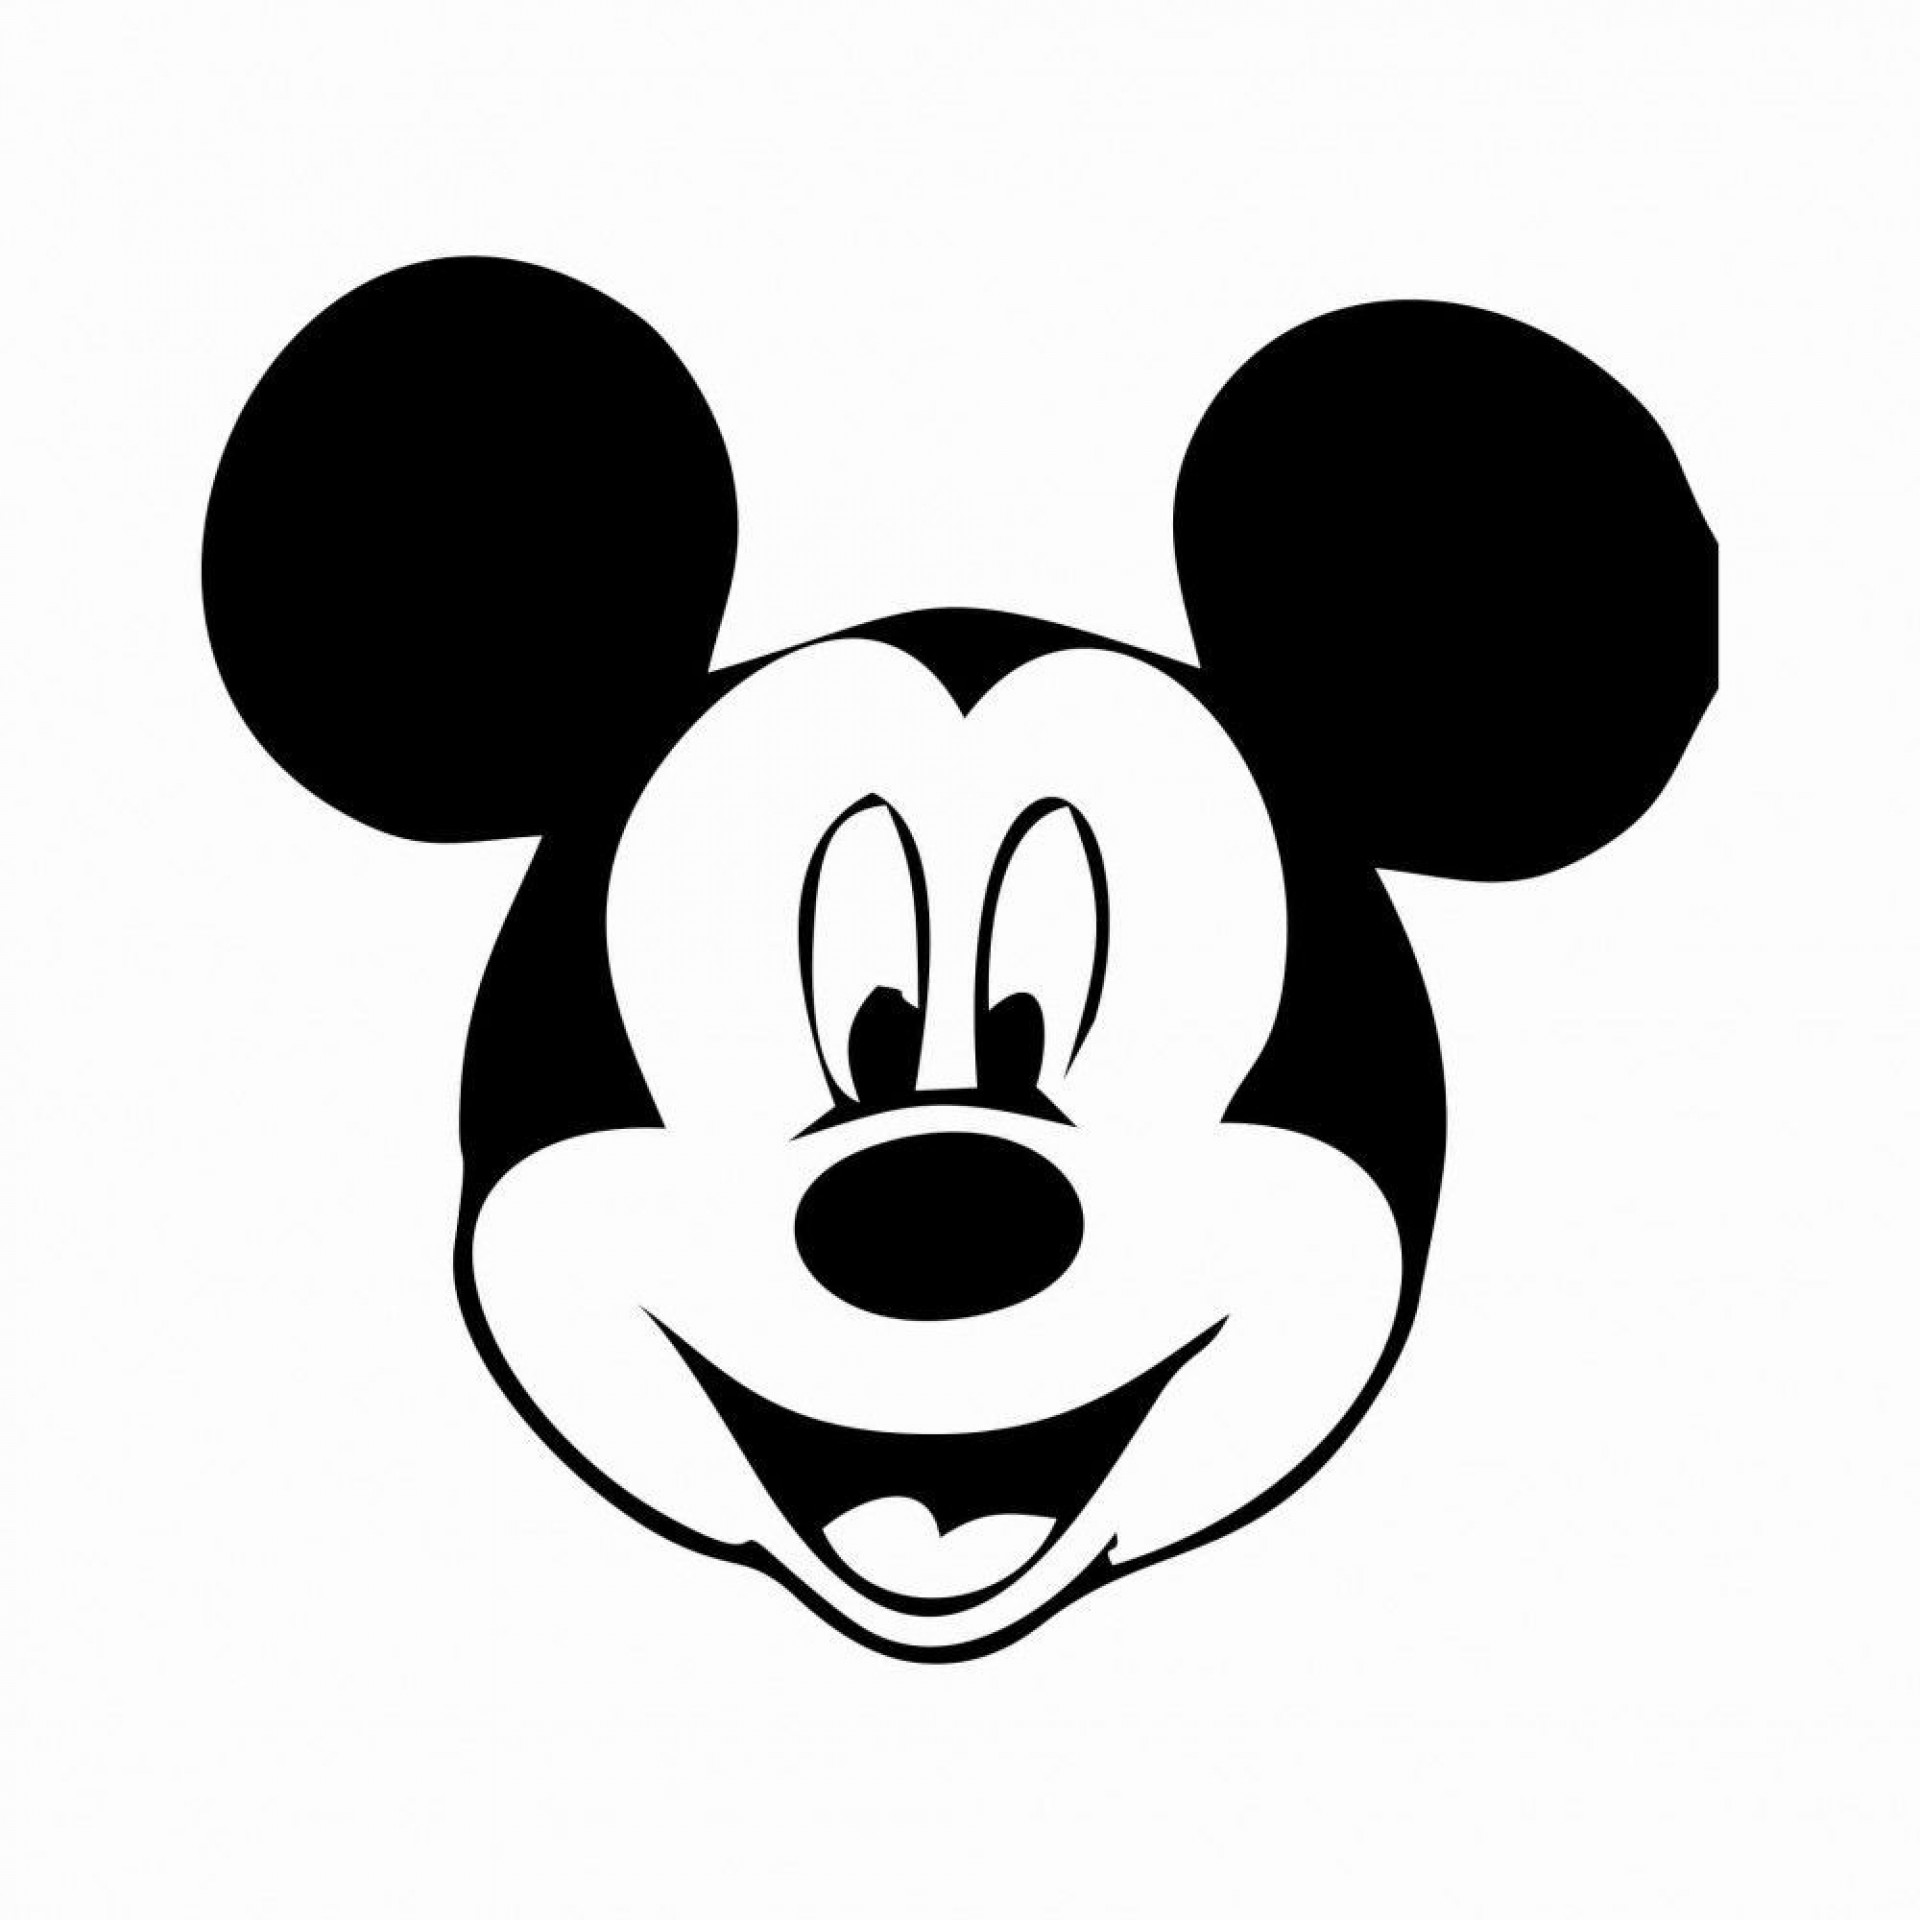 000 Unforgettable Mickey Mouse Face Cake Template Printable Image 1920